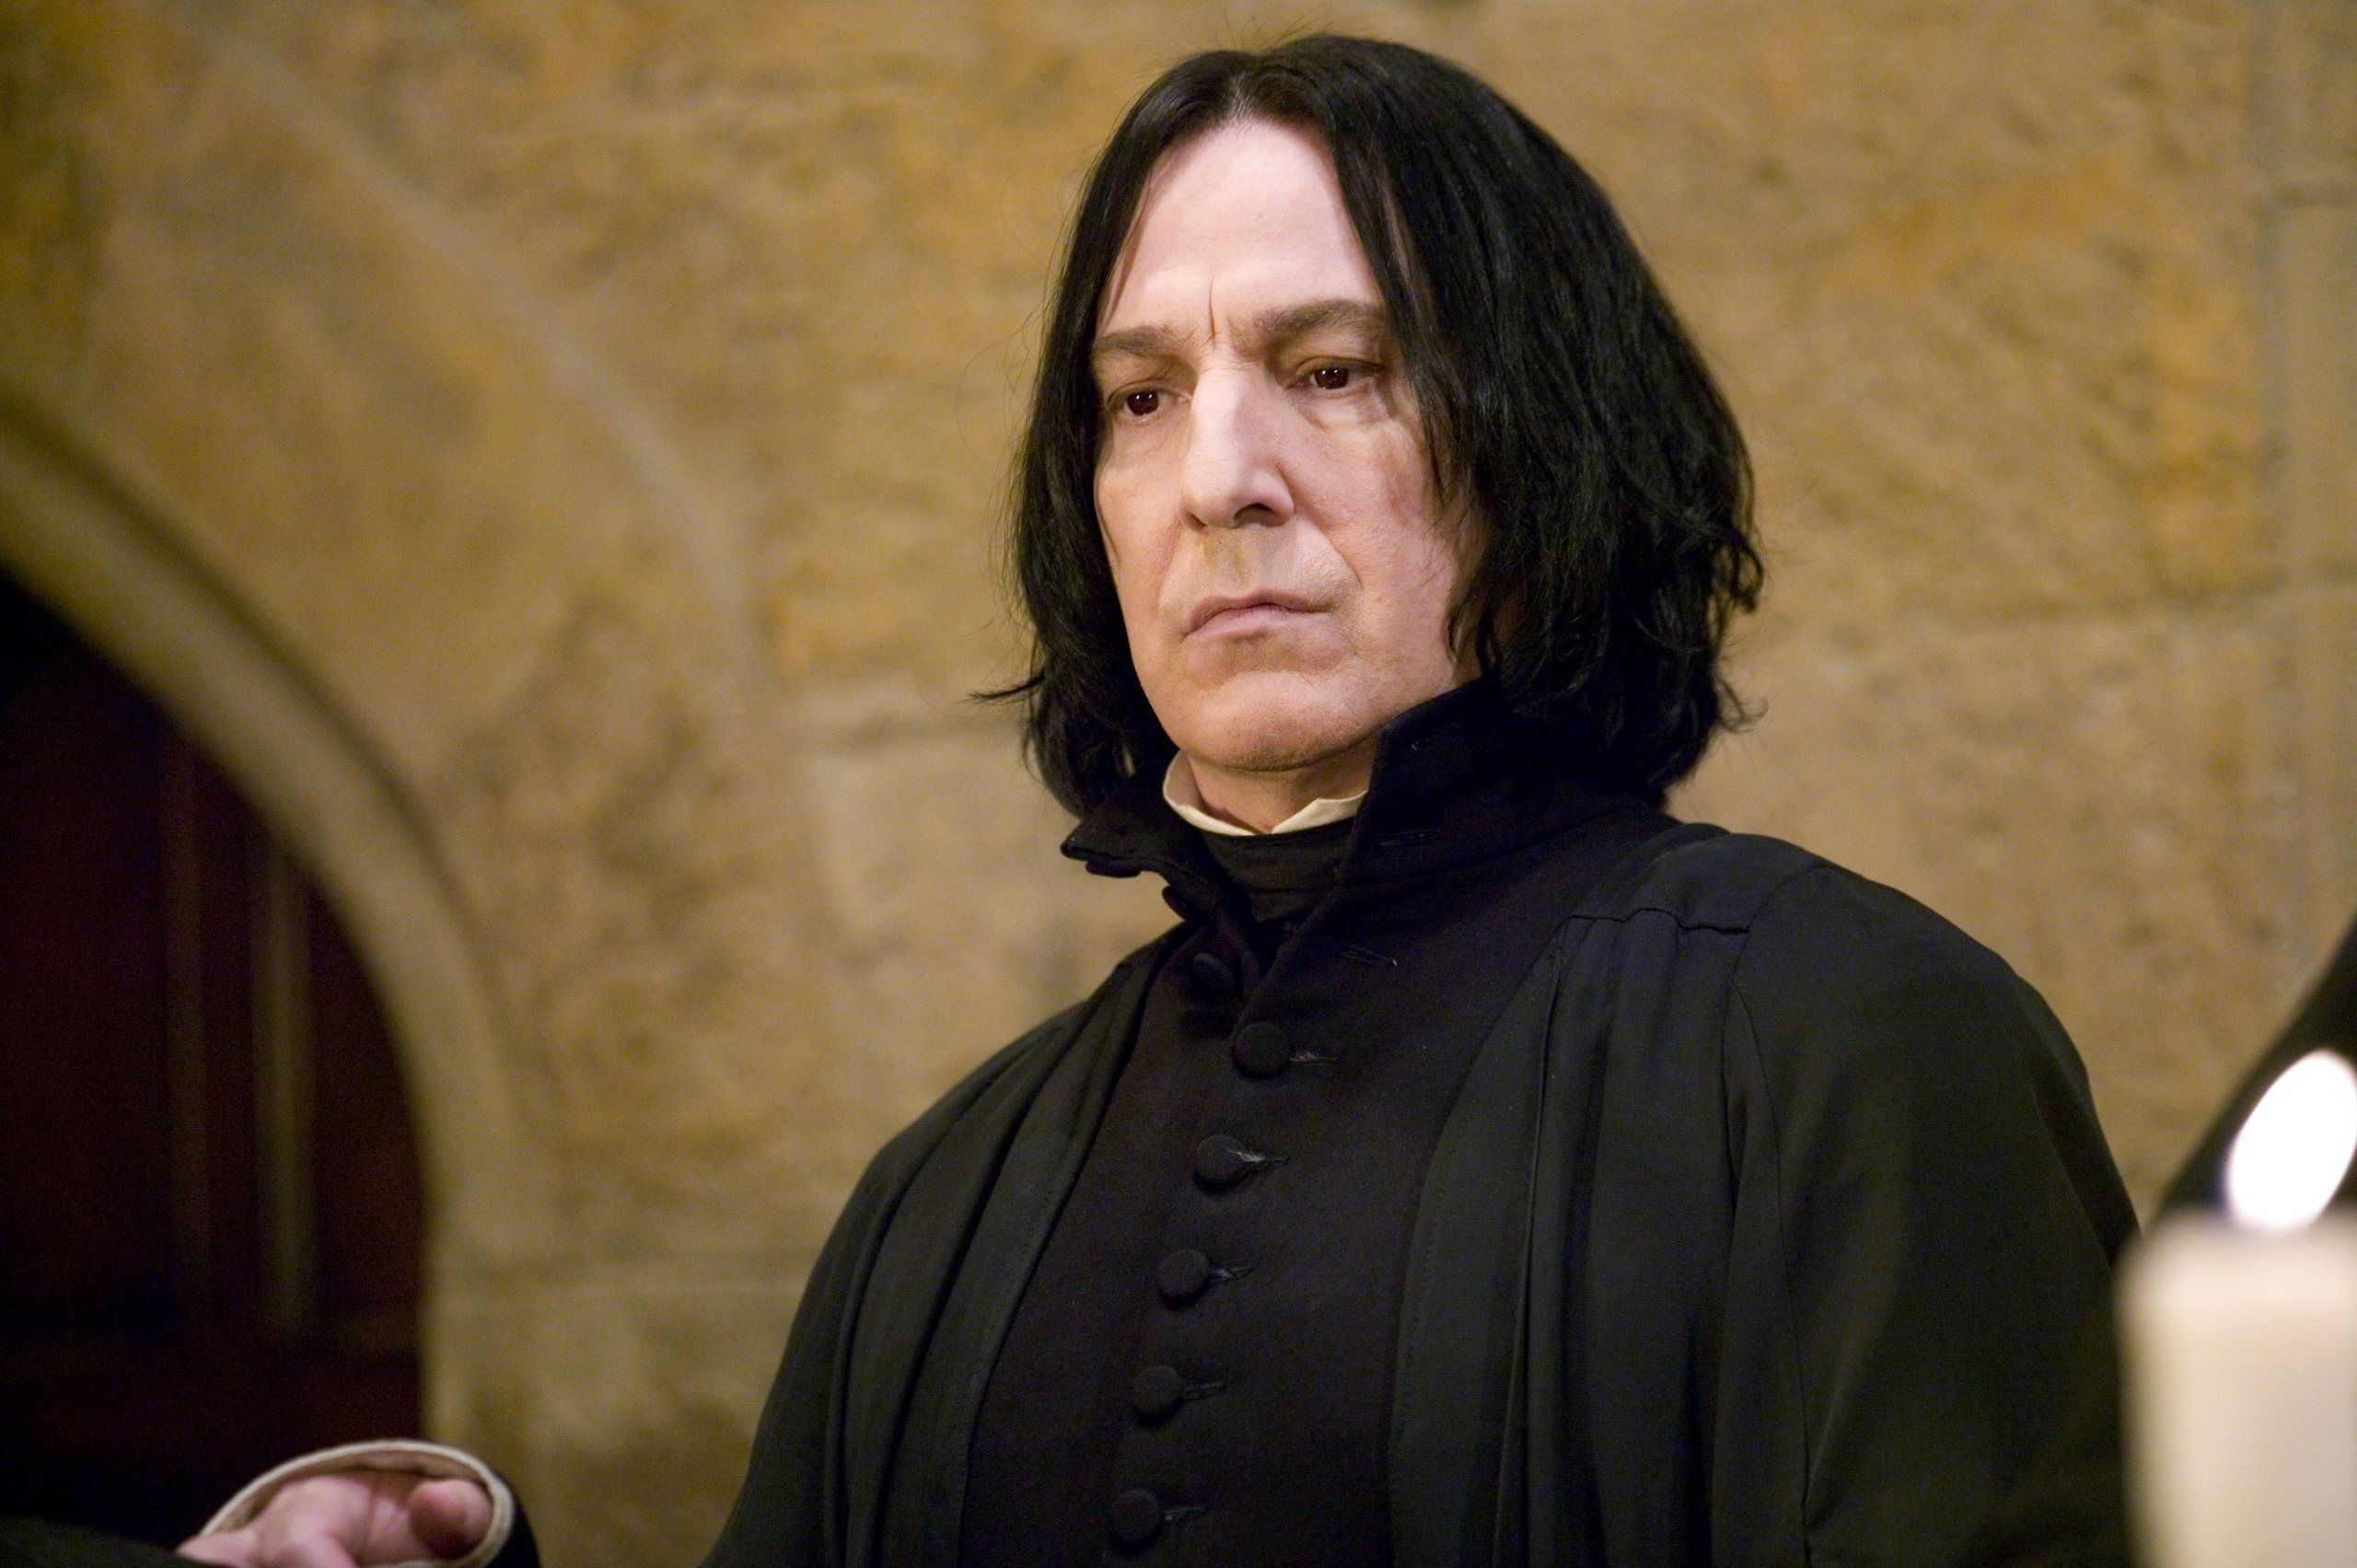 Snape S First Words To Harry Potter Actually Have A Really Deep